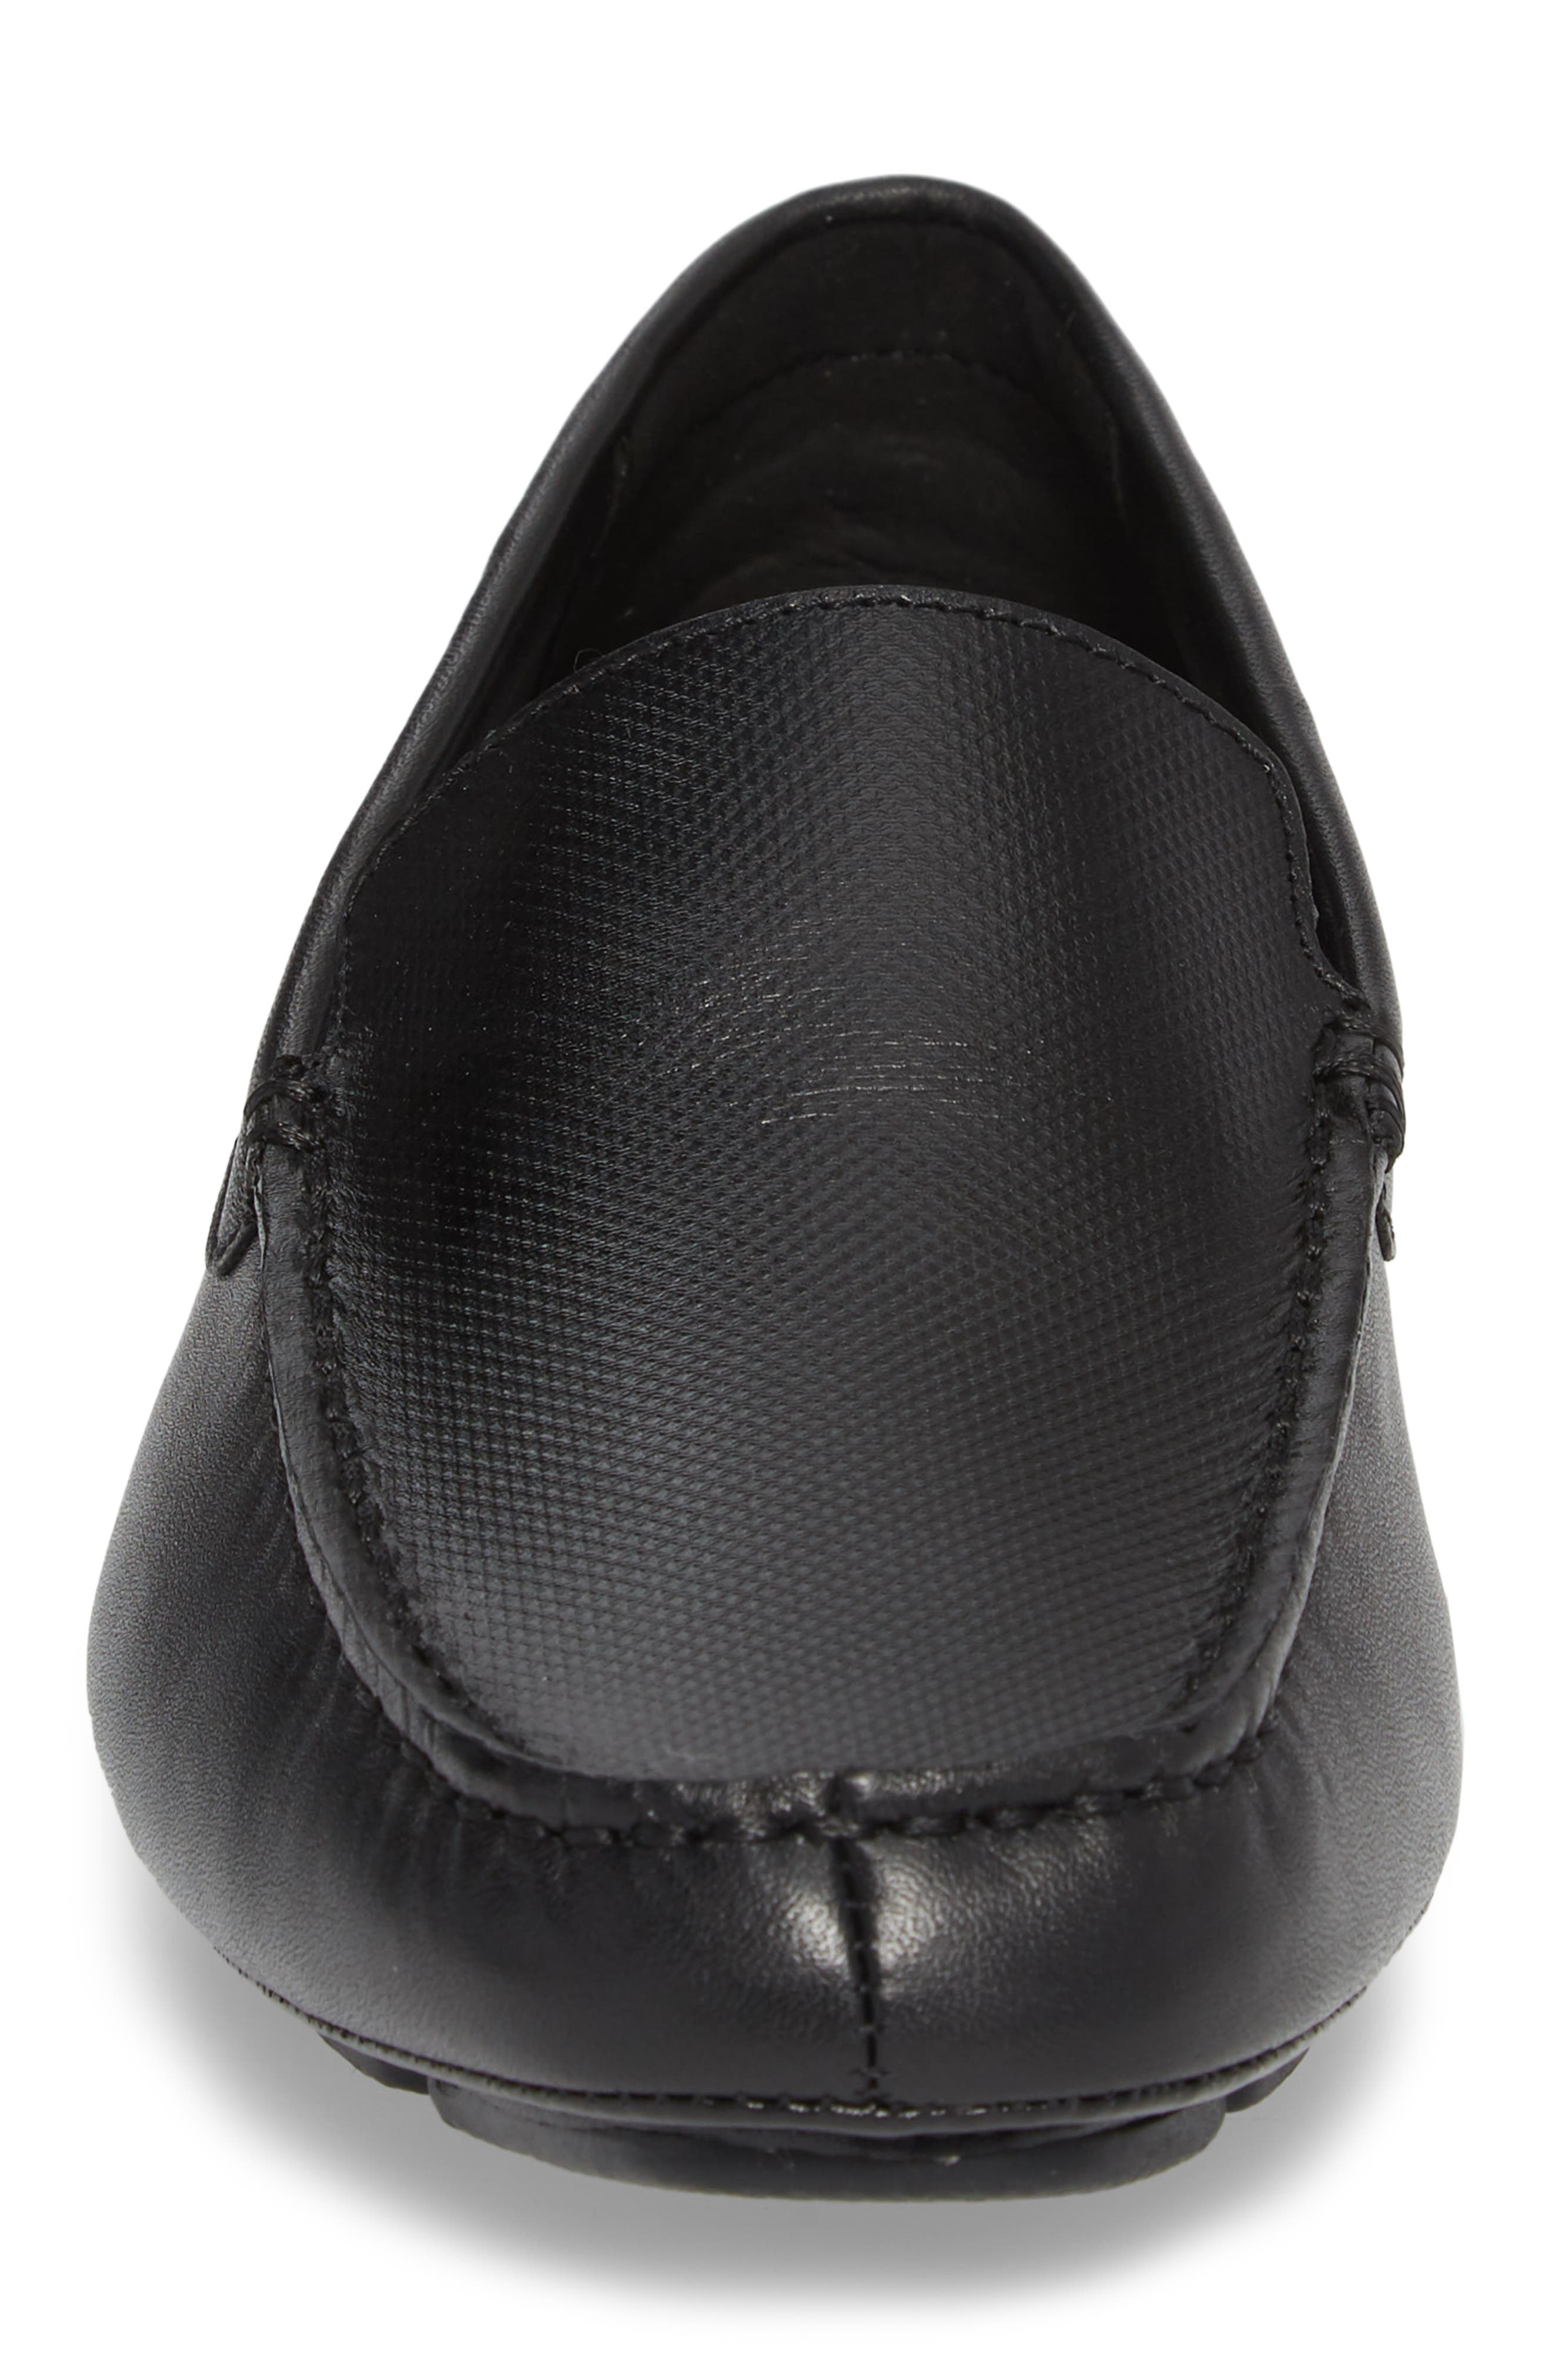 Miguel Textured Driving Loafer,                             Alternate thumbnail 4, color,                             Black Leather